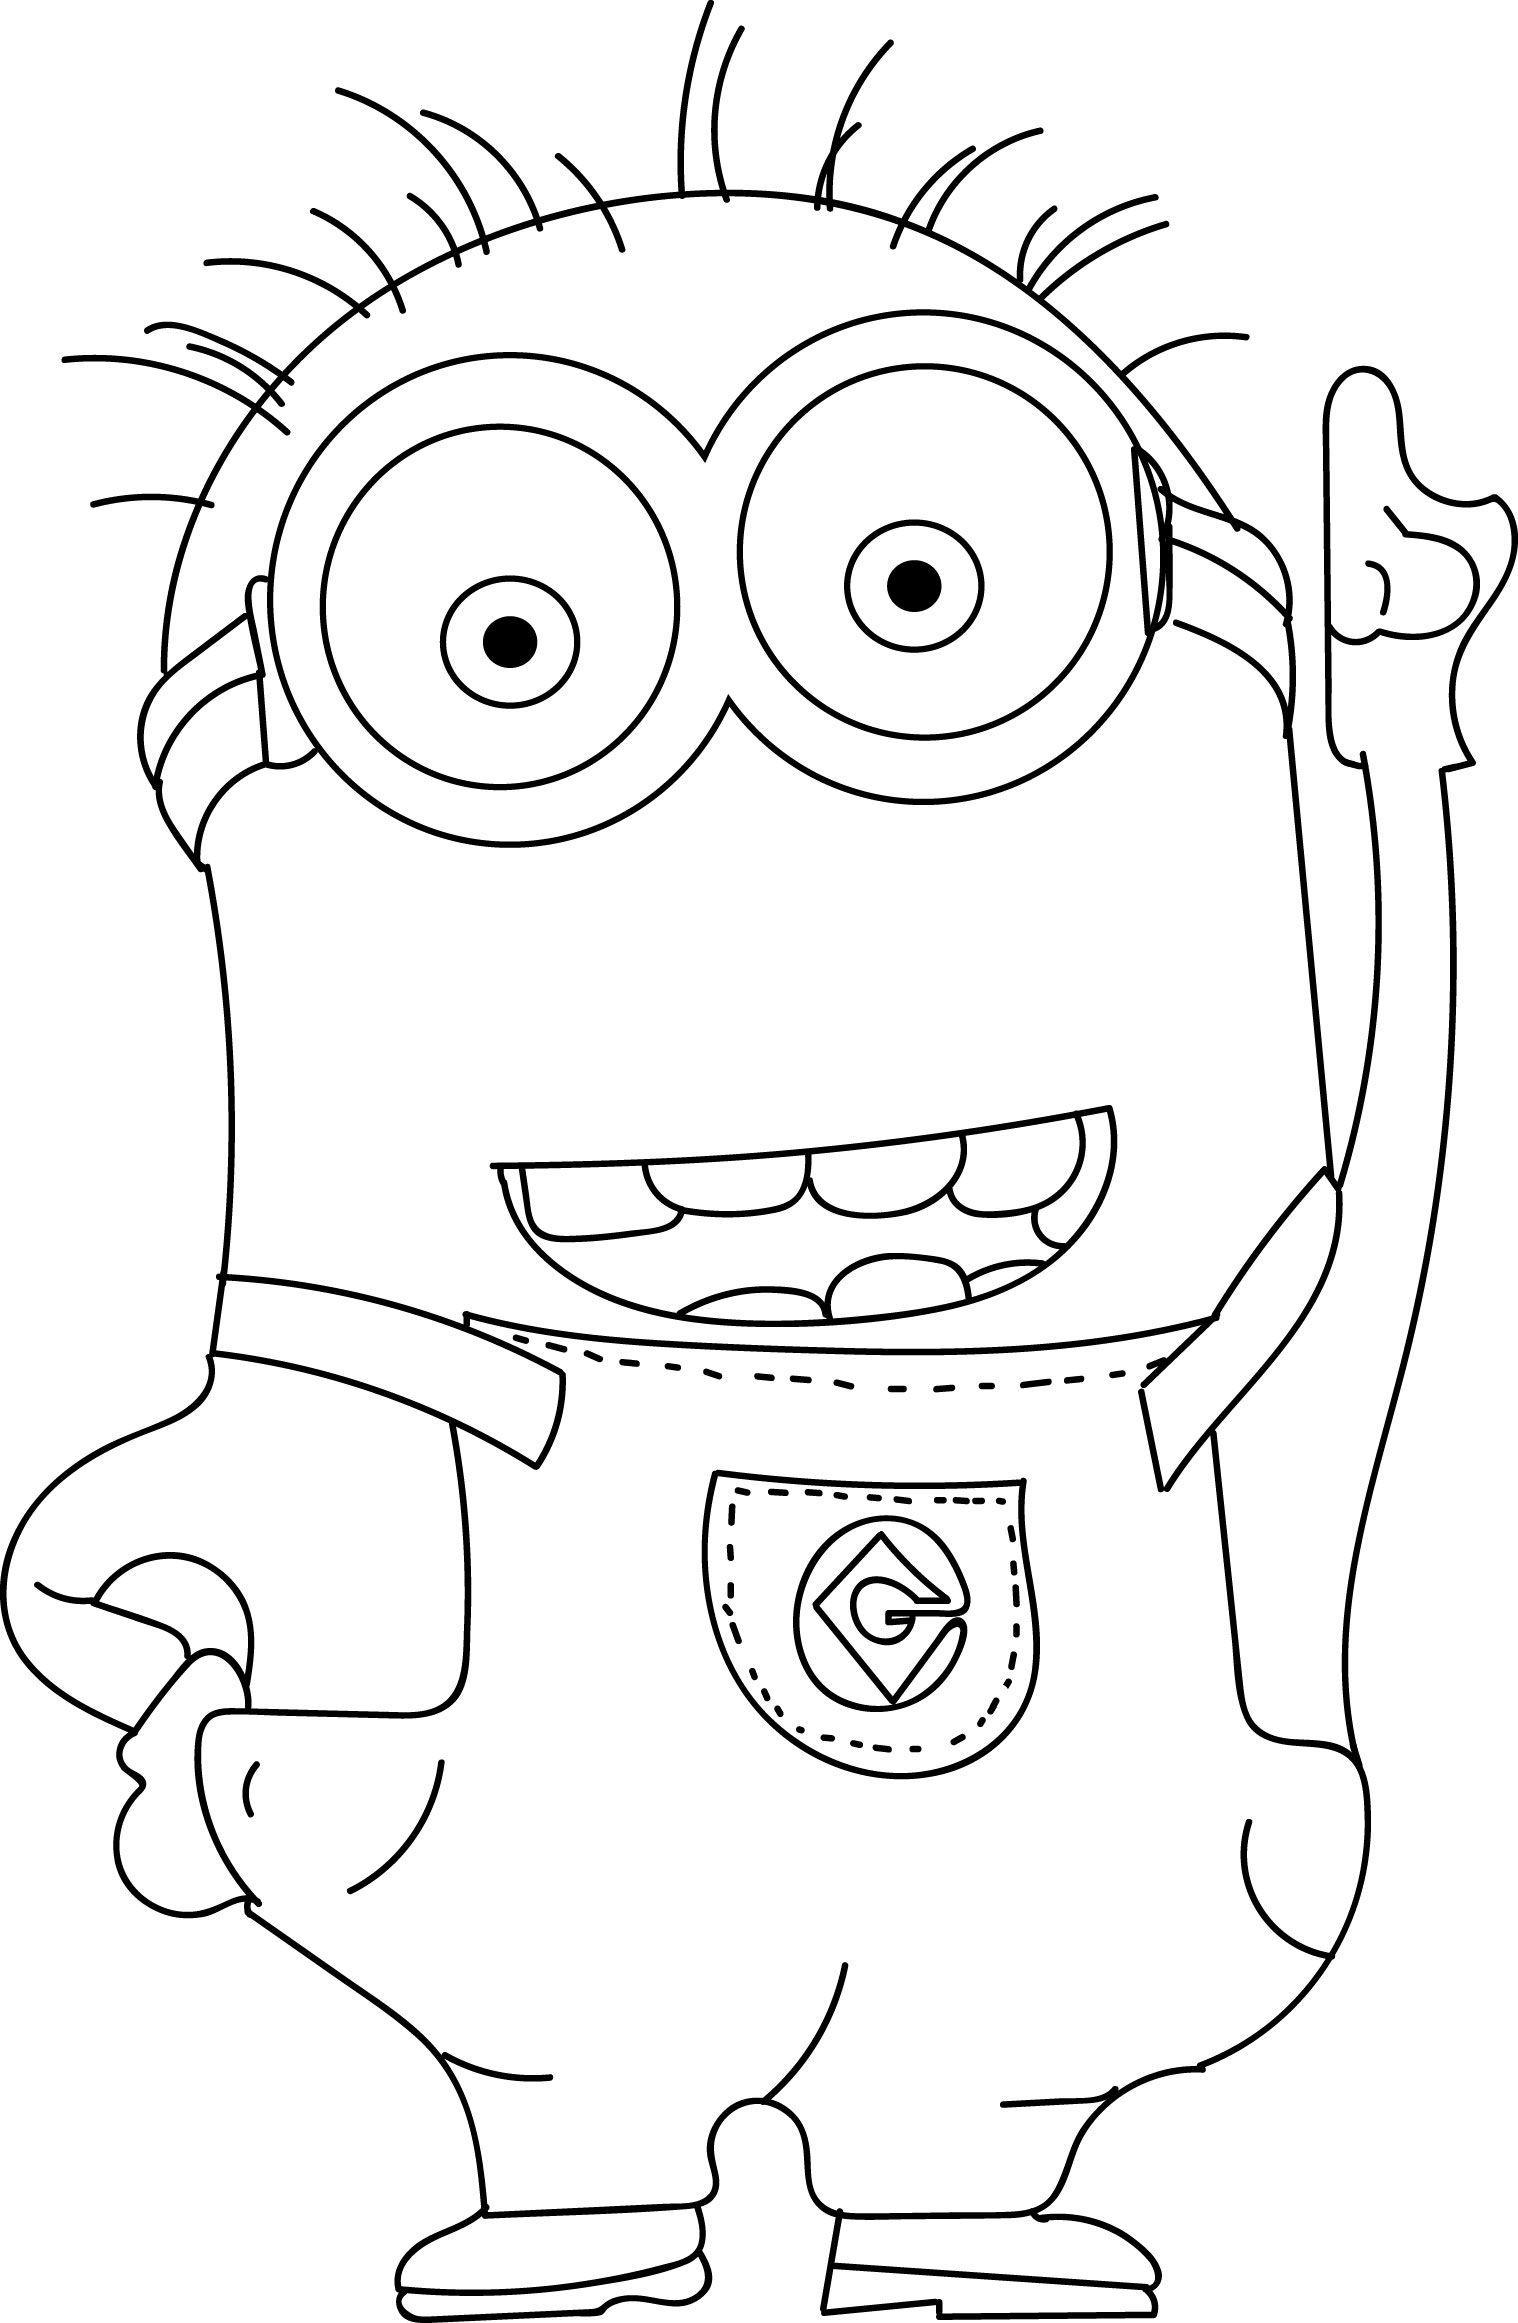 pinjana hochbach on coloring pages  minions coloring